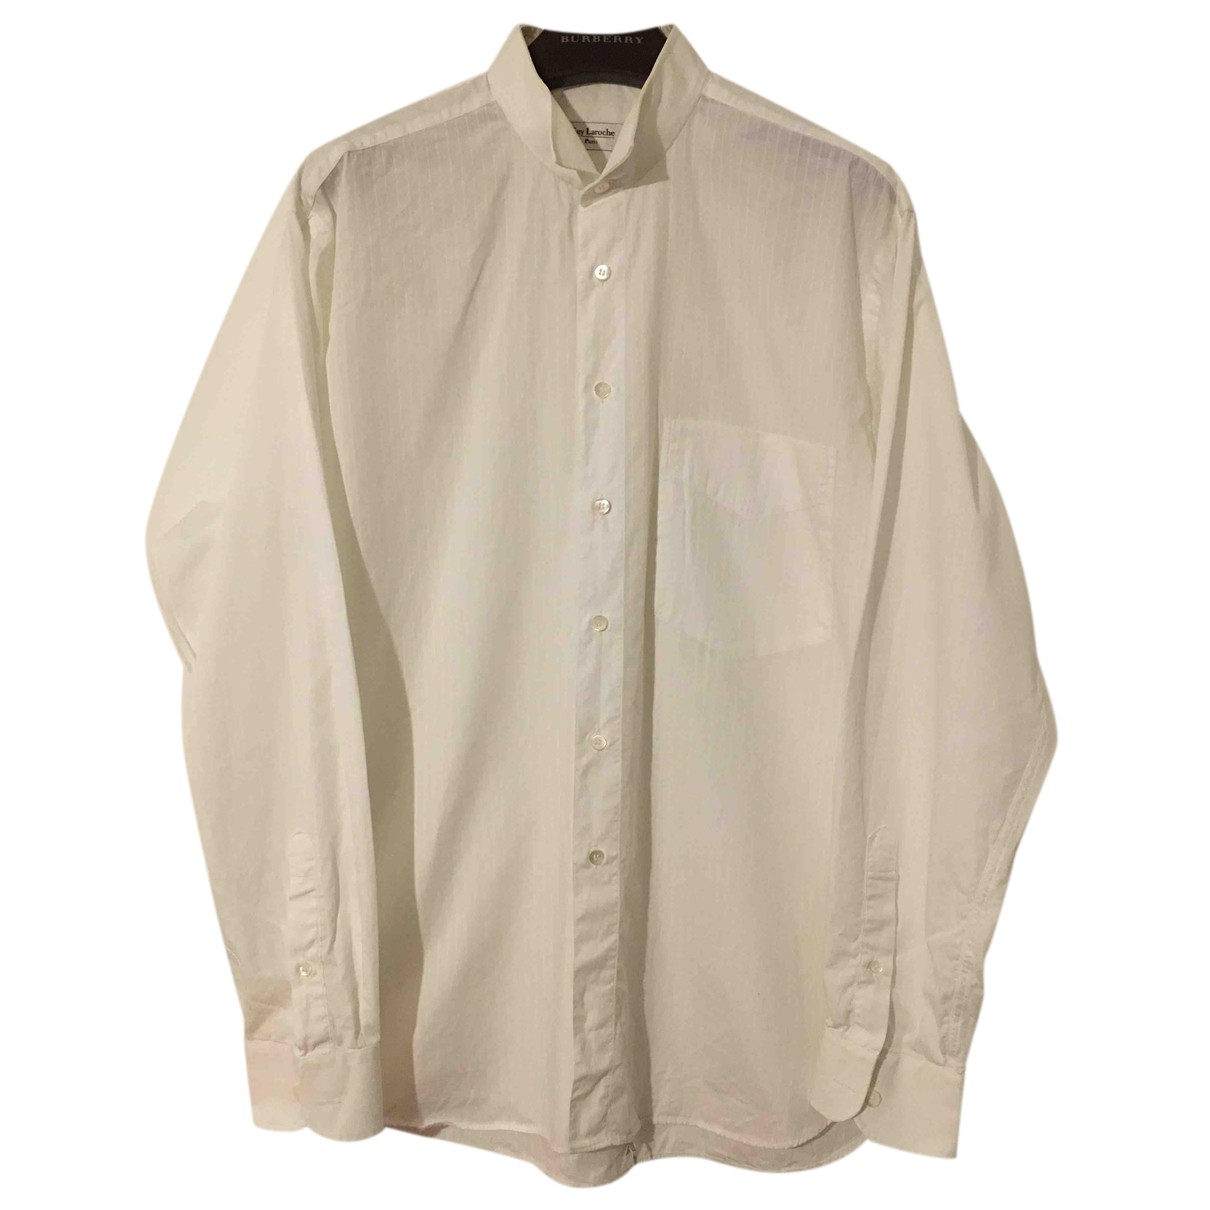 Guy Laroche N White Cotton Shirts for Men 41 EU (tour de cou / collar)